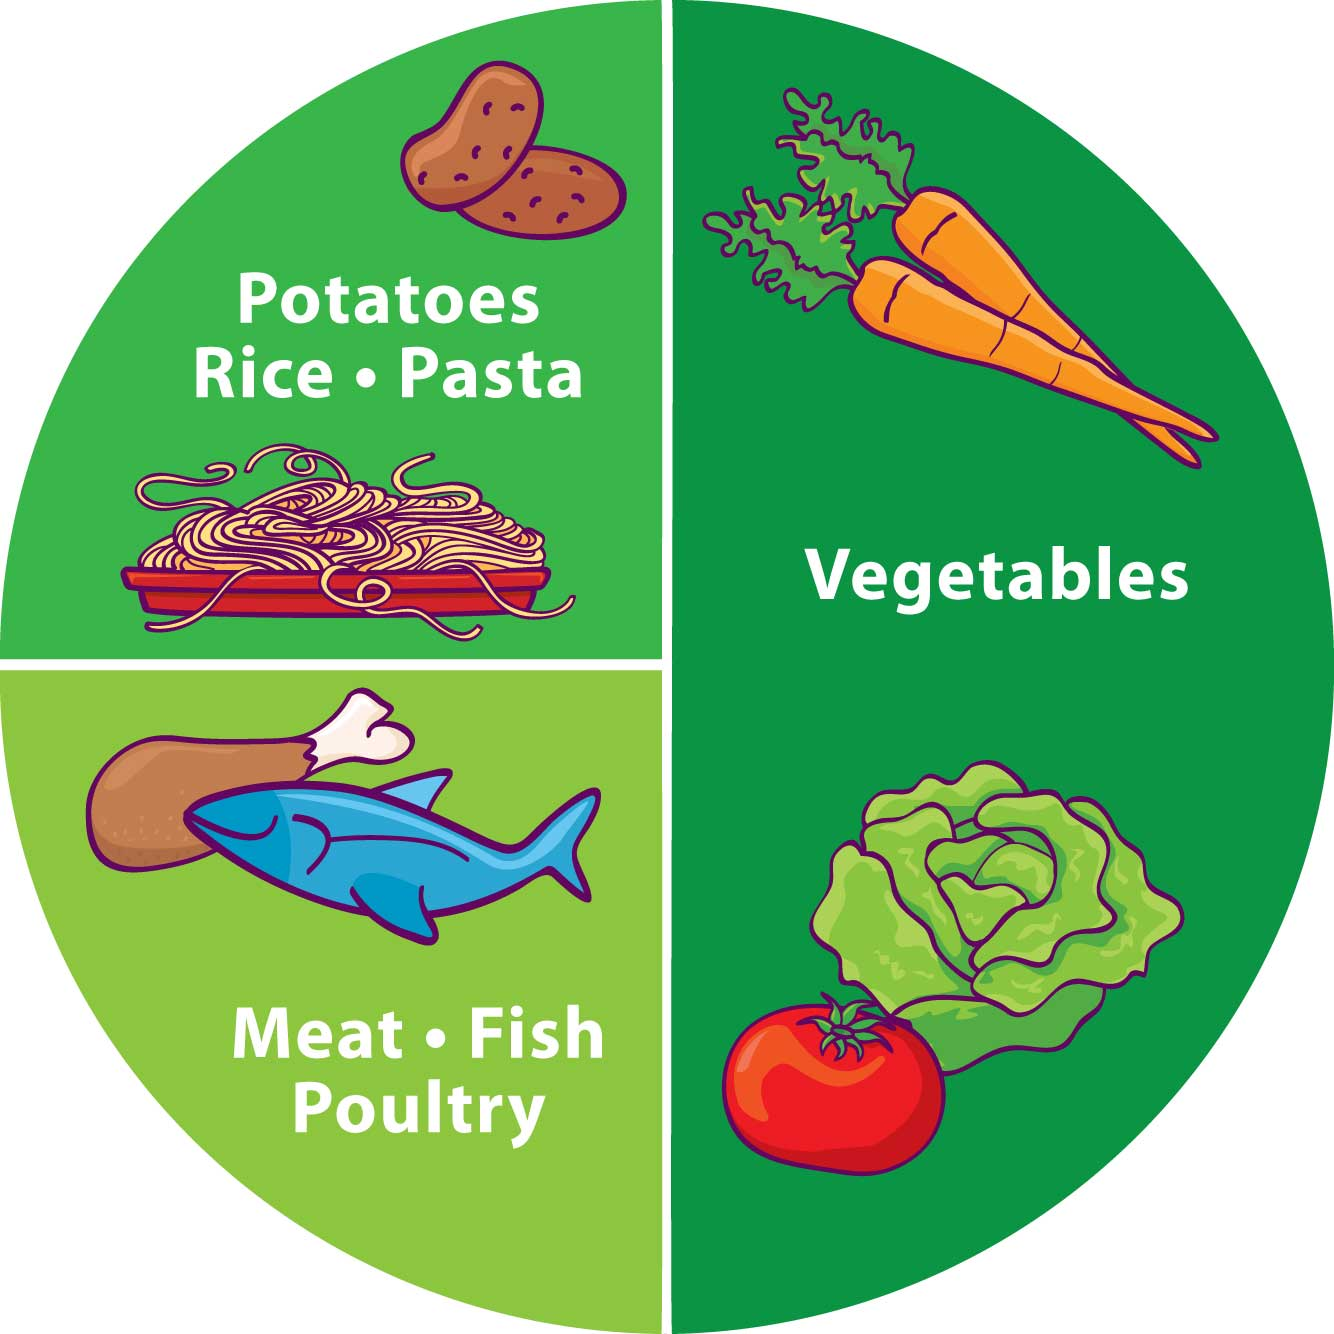 Each Of These Food Groups Should Be On Your Plate To Ensure You Give Your Body